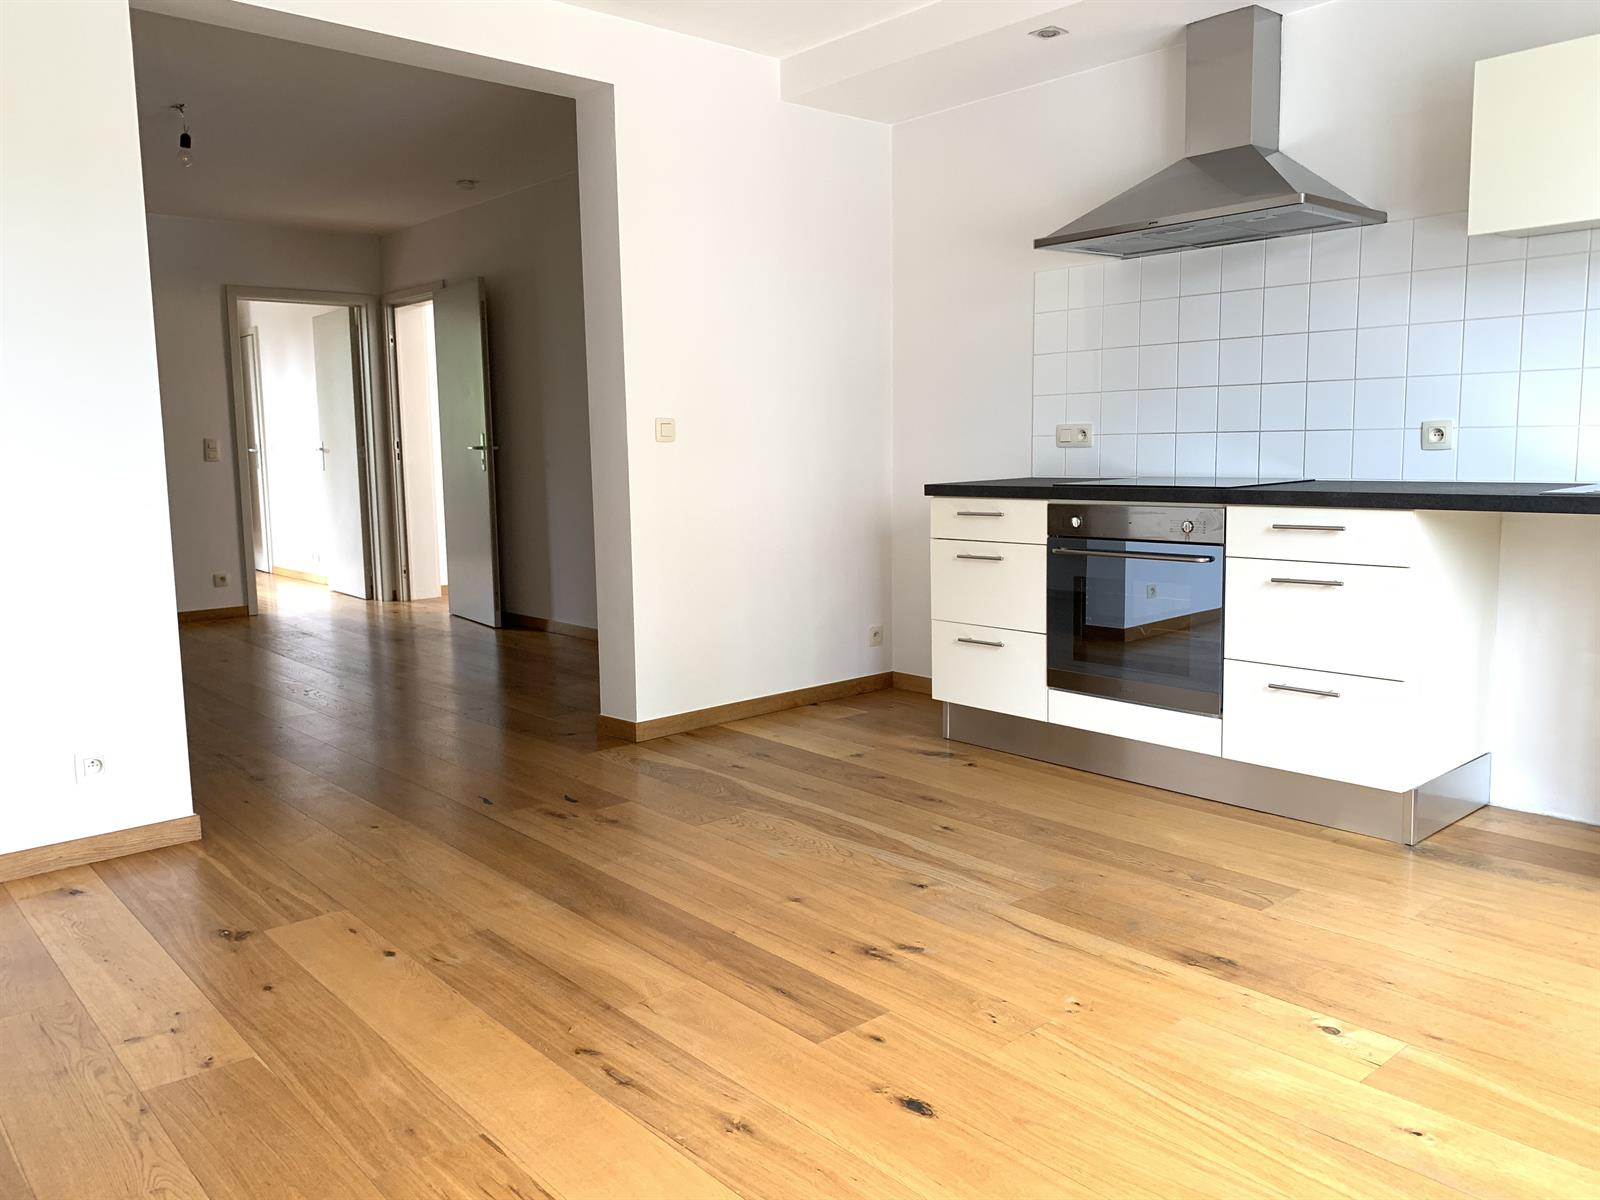 Appartement - Uccle - #4056391-1